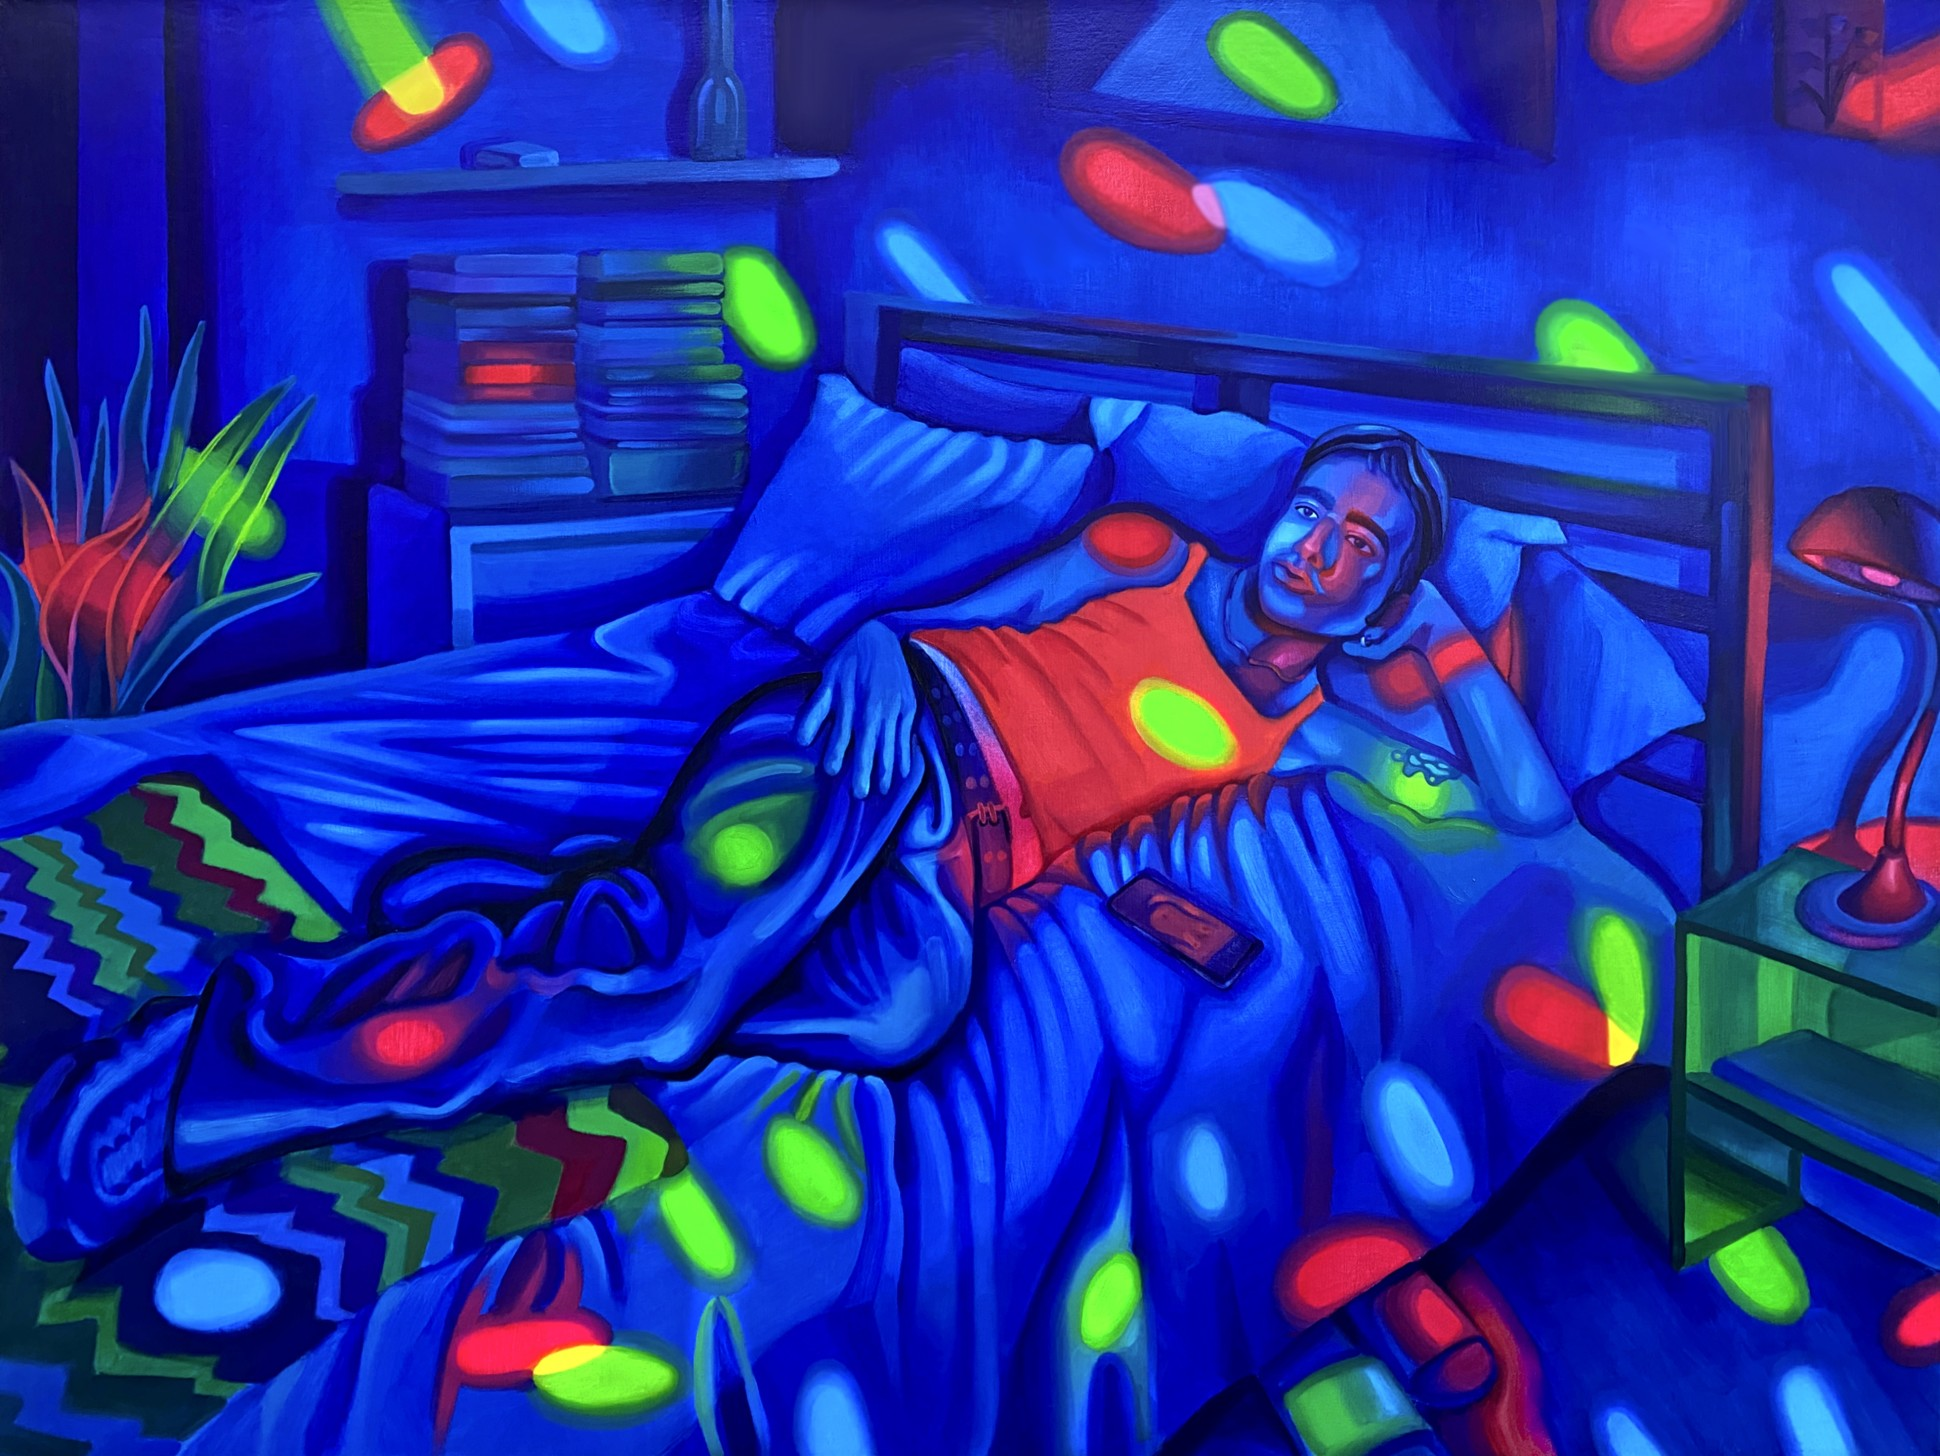 James Bartolacci Self-Portrait at Night, 2020 Oil on Canvas 91 x 122 cm. / 36 x 48 in.